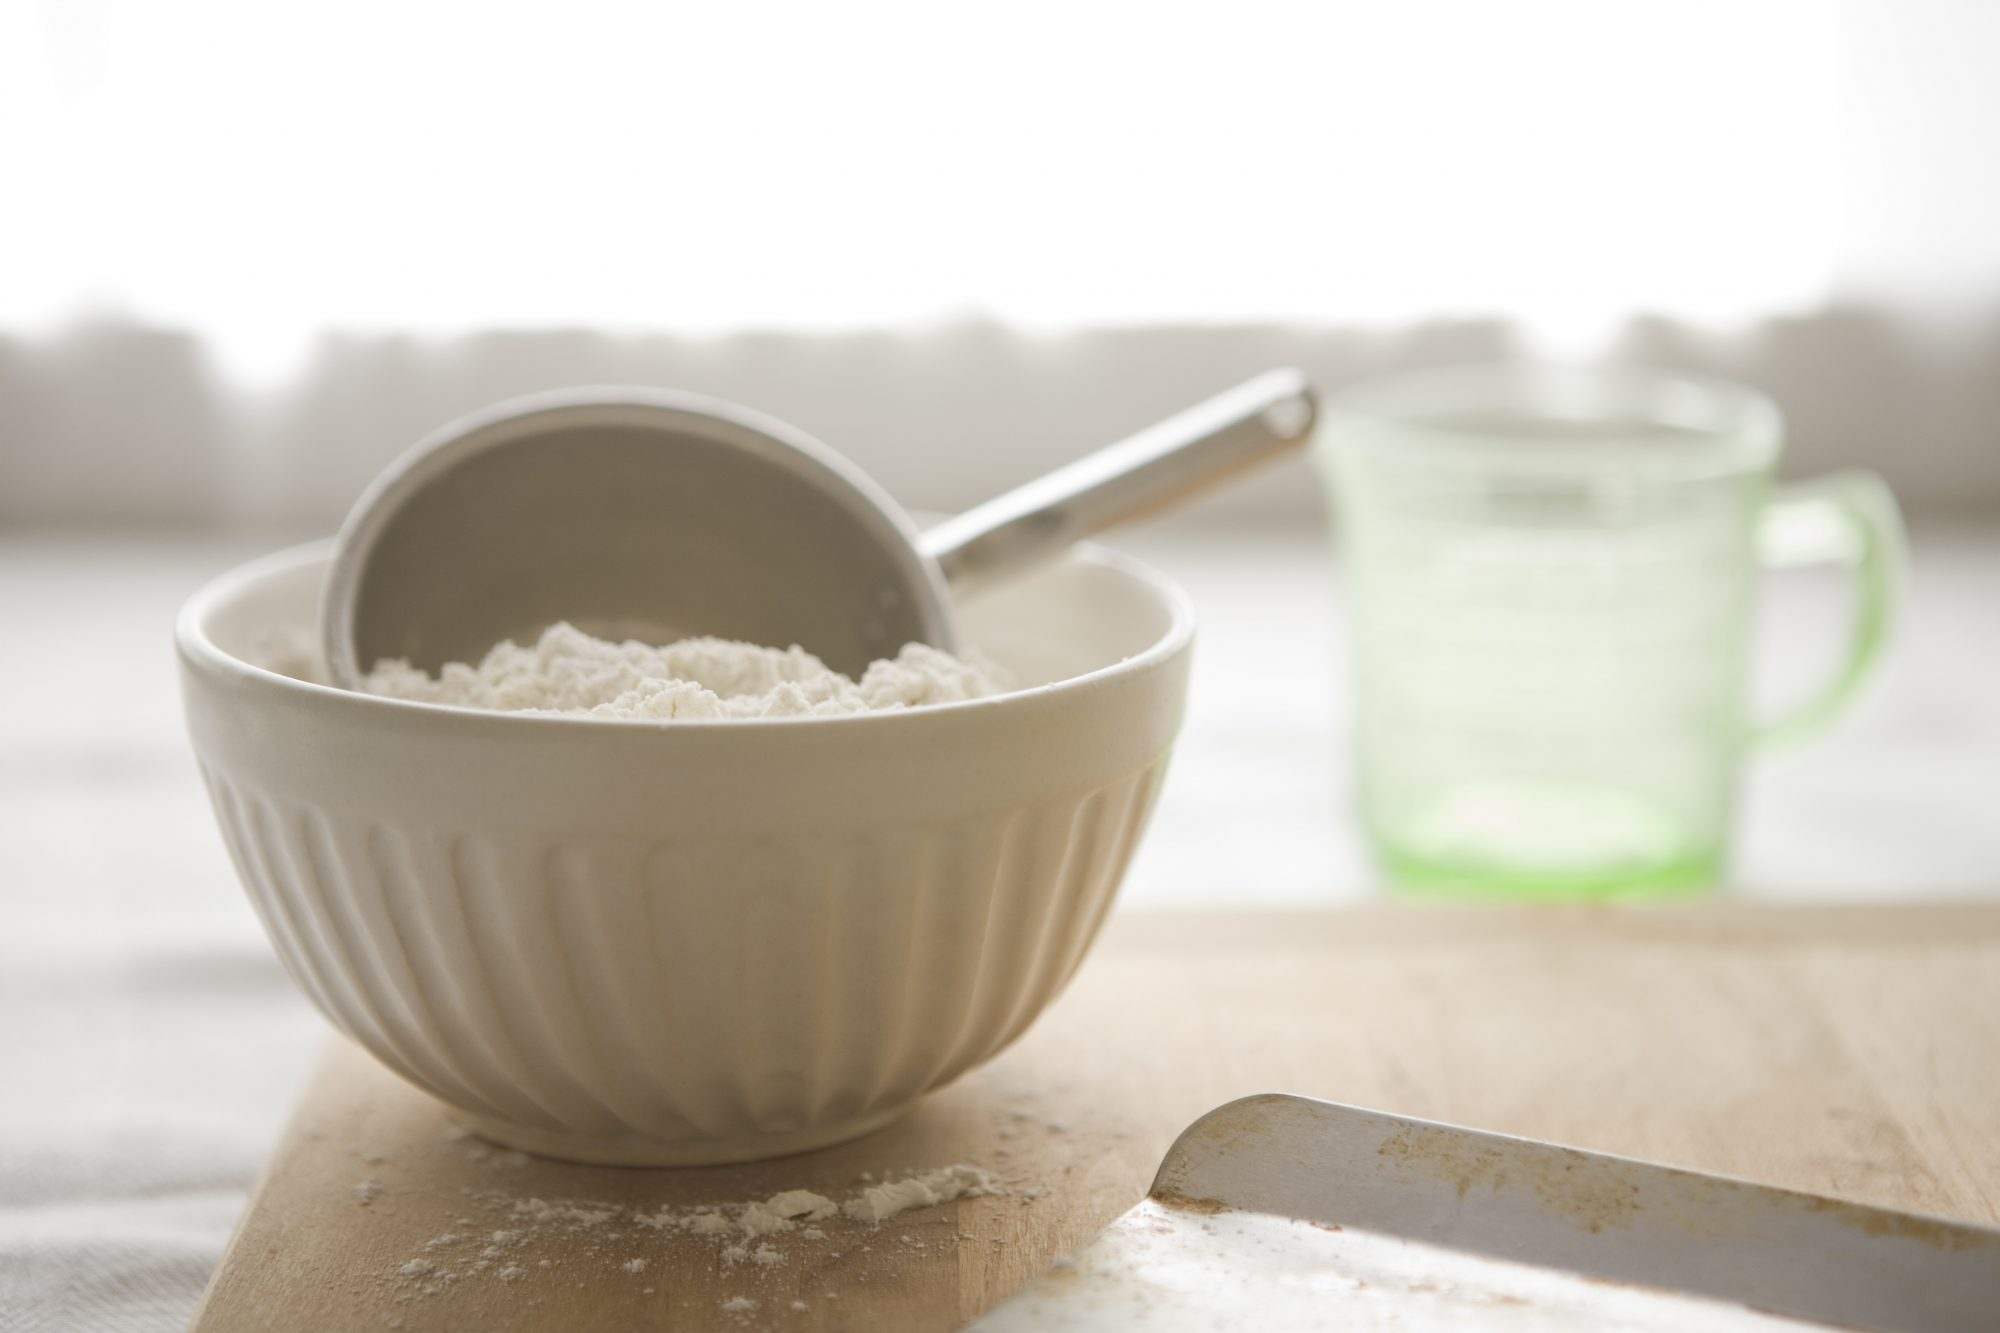 small bowl of flour on counter